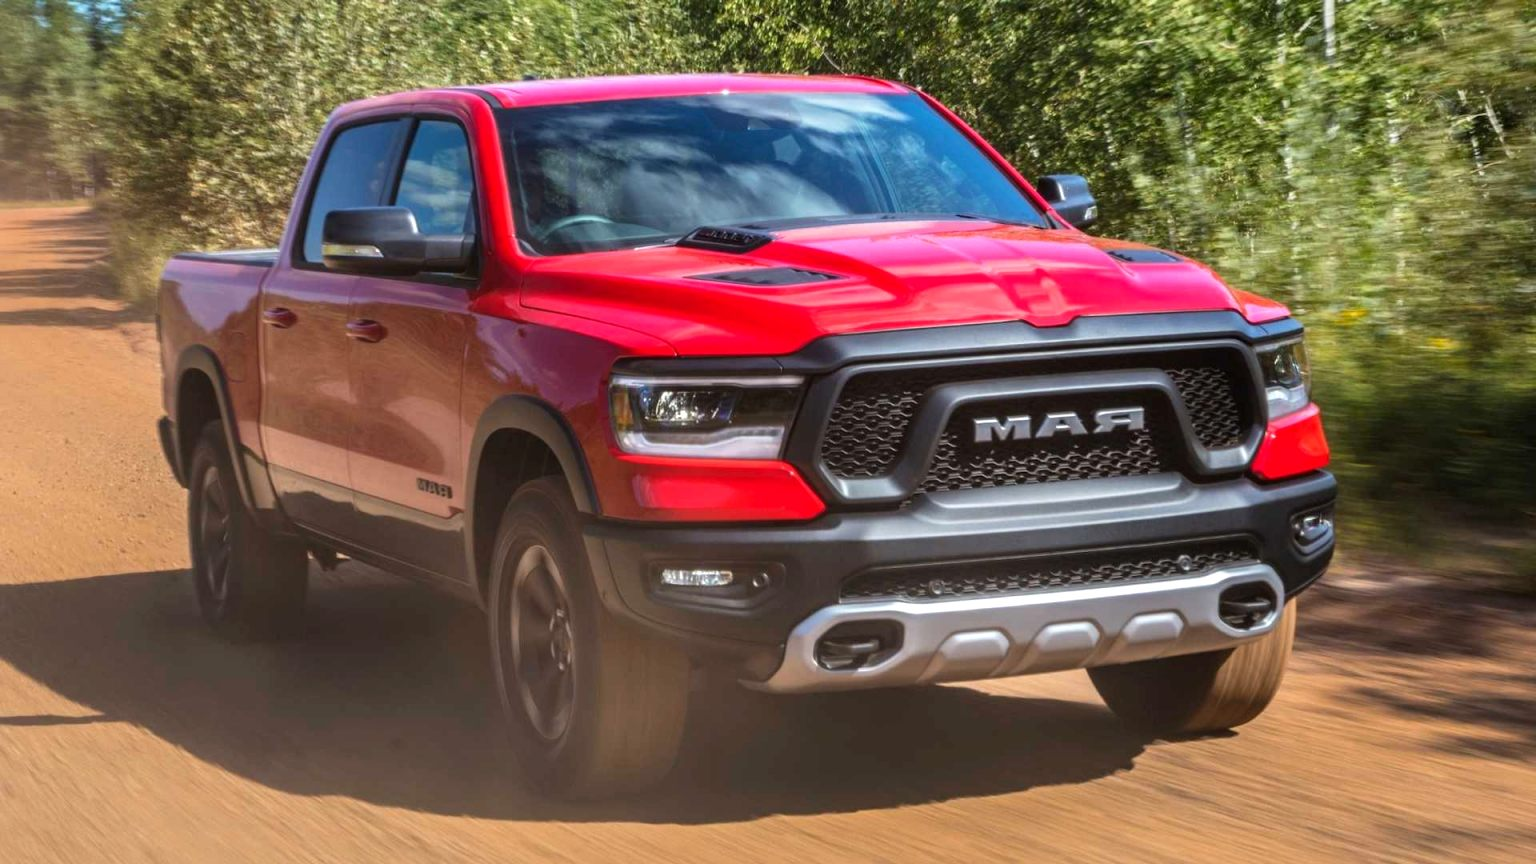 2020 dodge ecodiesel price Price and Release date